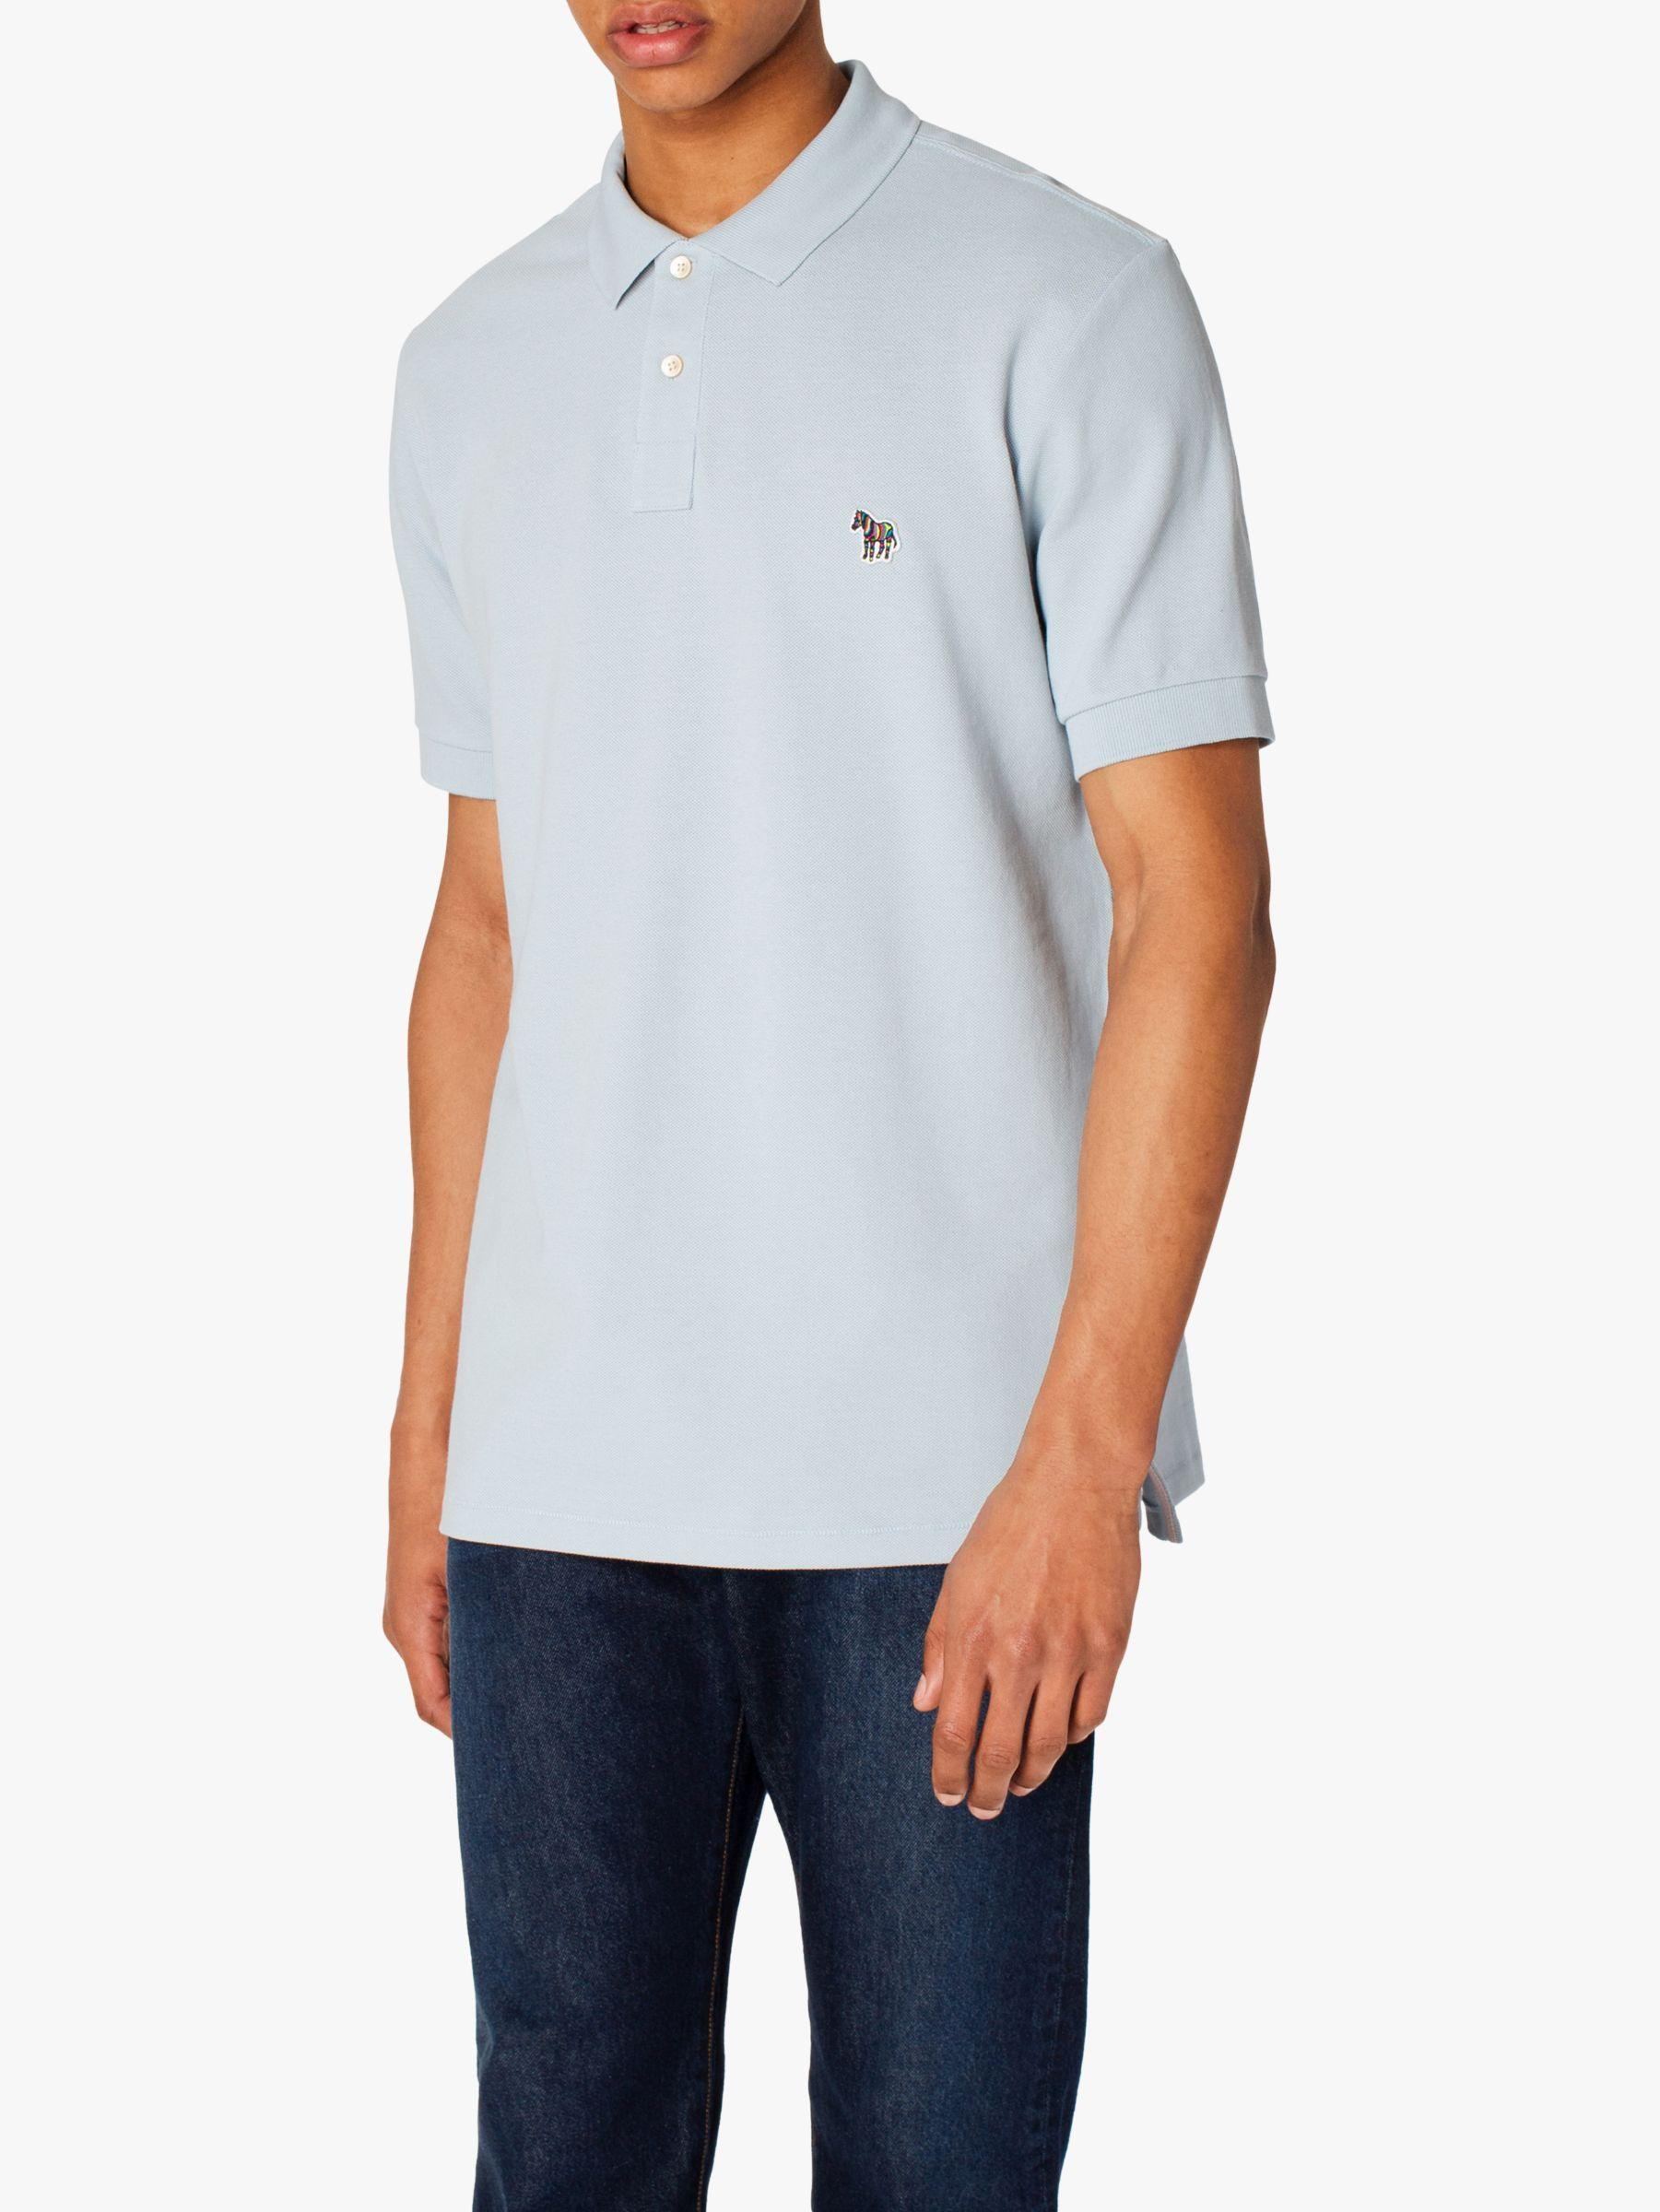 f7bd0c22 Paul Smith. Men's Blue Ps Pique Zebra Polo Shirt. £65 From John Lewis and  Partners